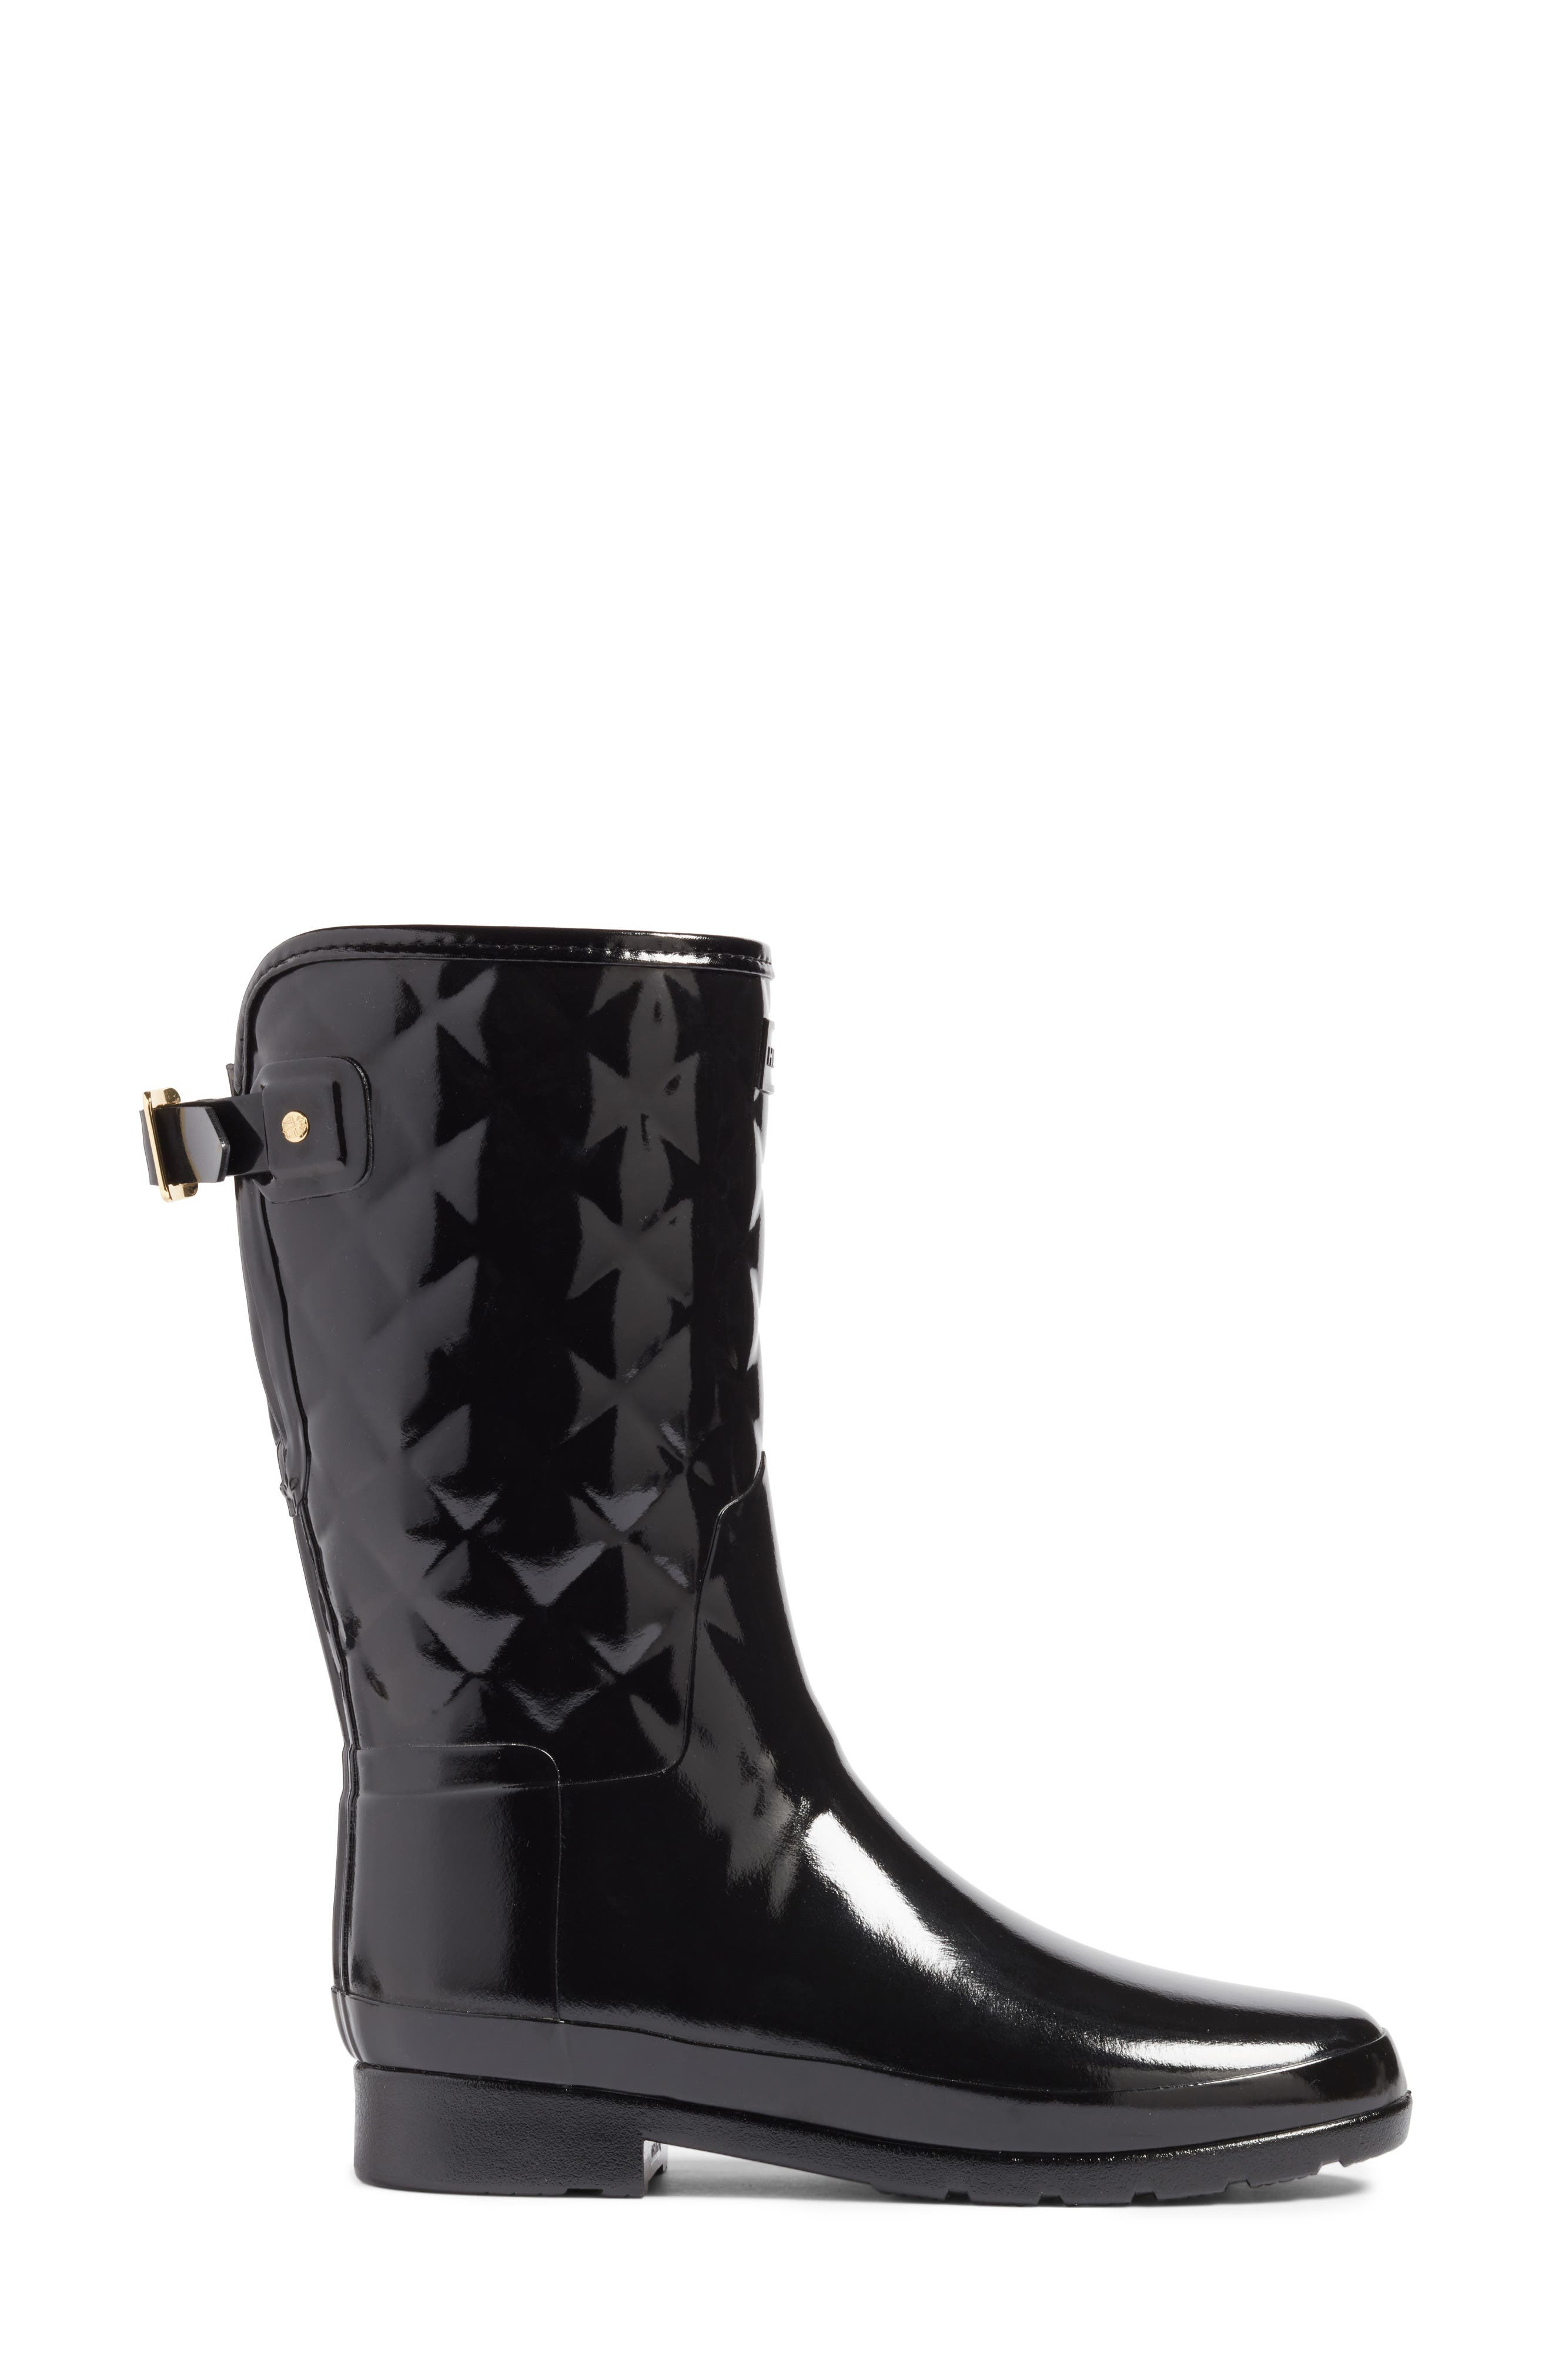 HUNTER, Refined High Gloss Quilted Short Waterproof Rain Boot, Alternate thumbnail 3, color, BLACK